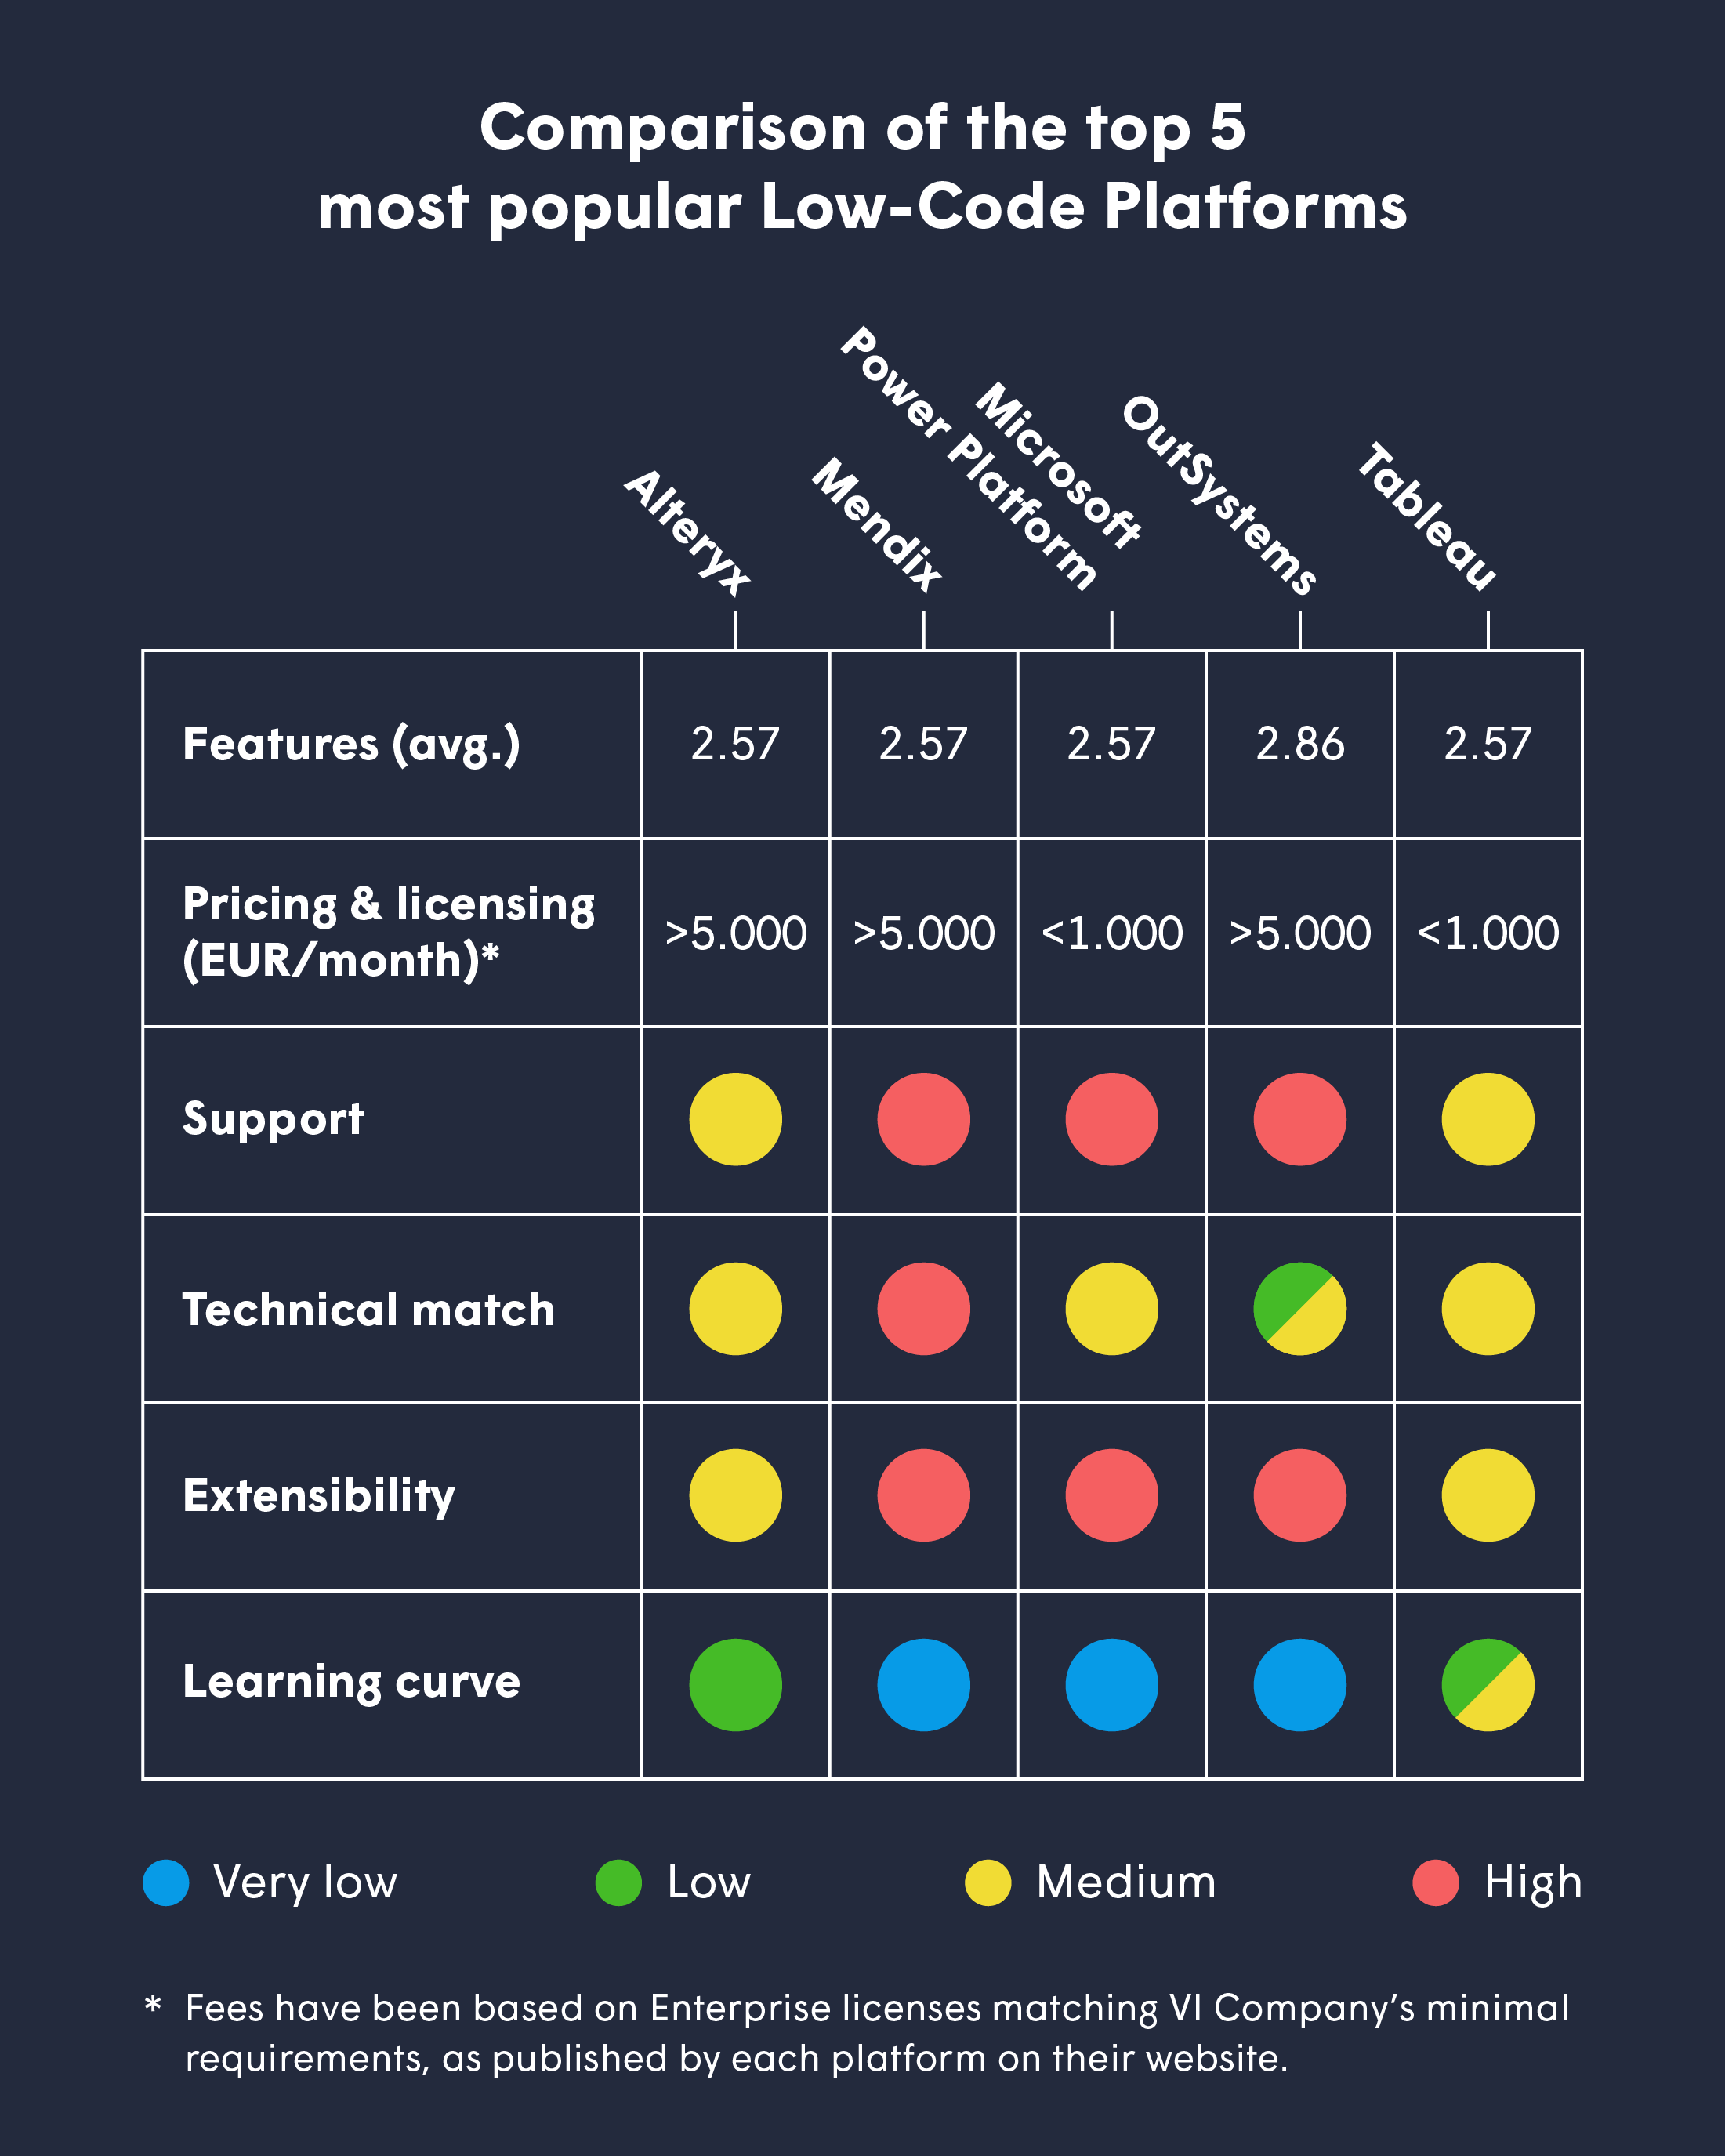 comparison of the top 5 most popular Low-Code Platforms